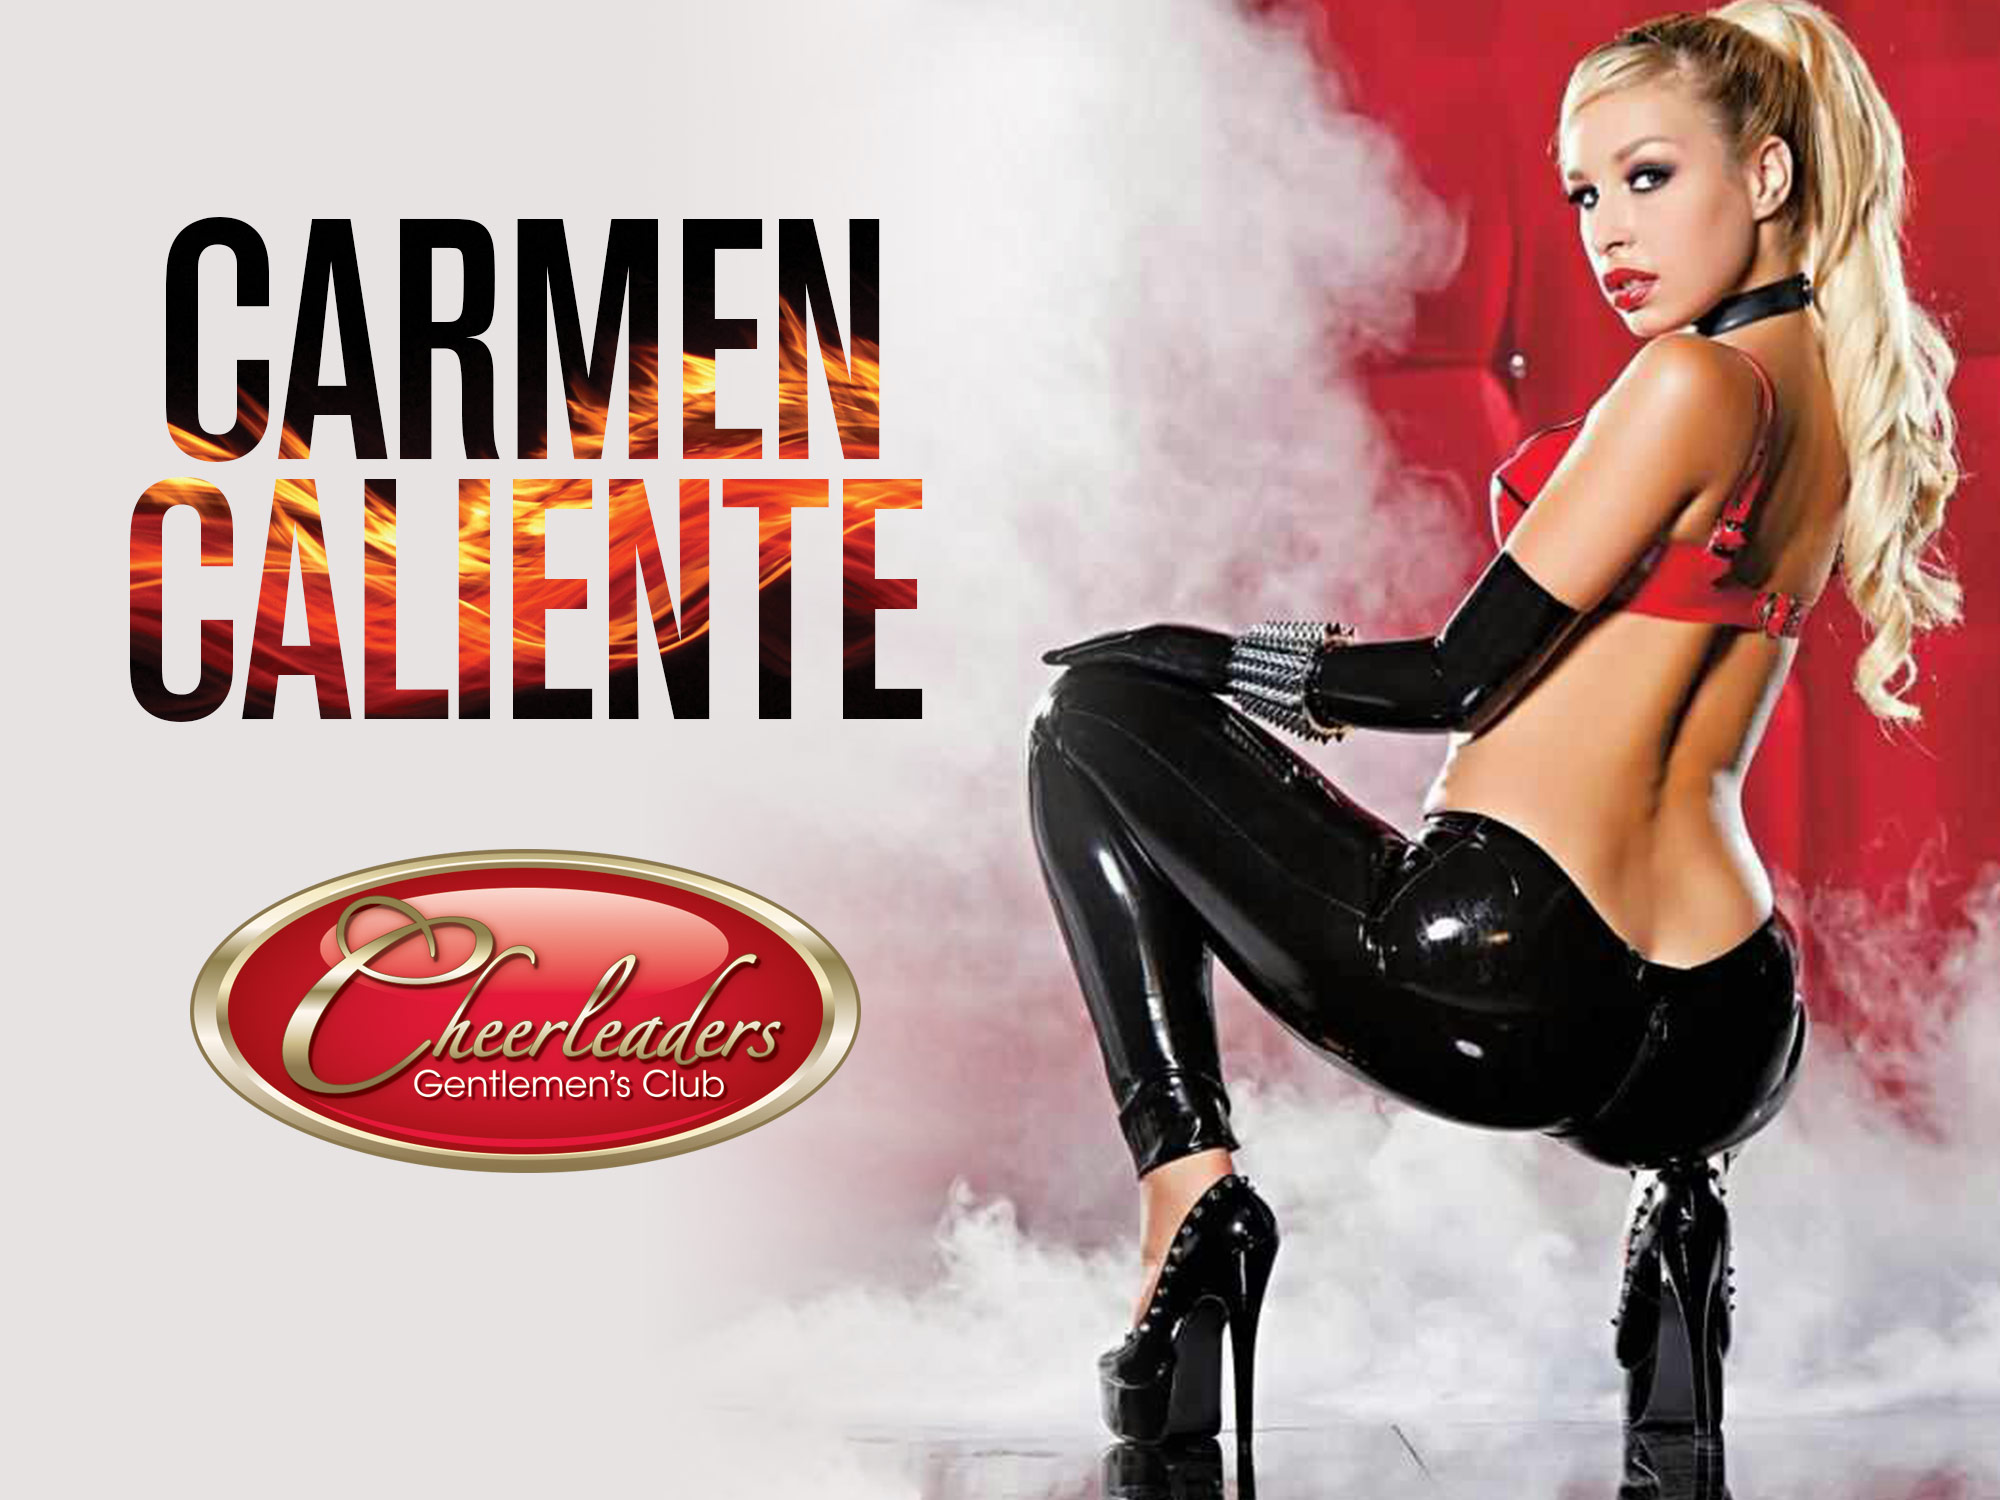 Carmen Caliente - Cheerleaders Pittsburgh